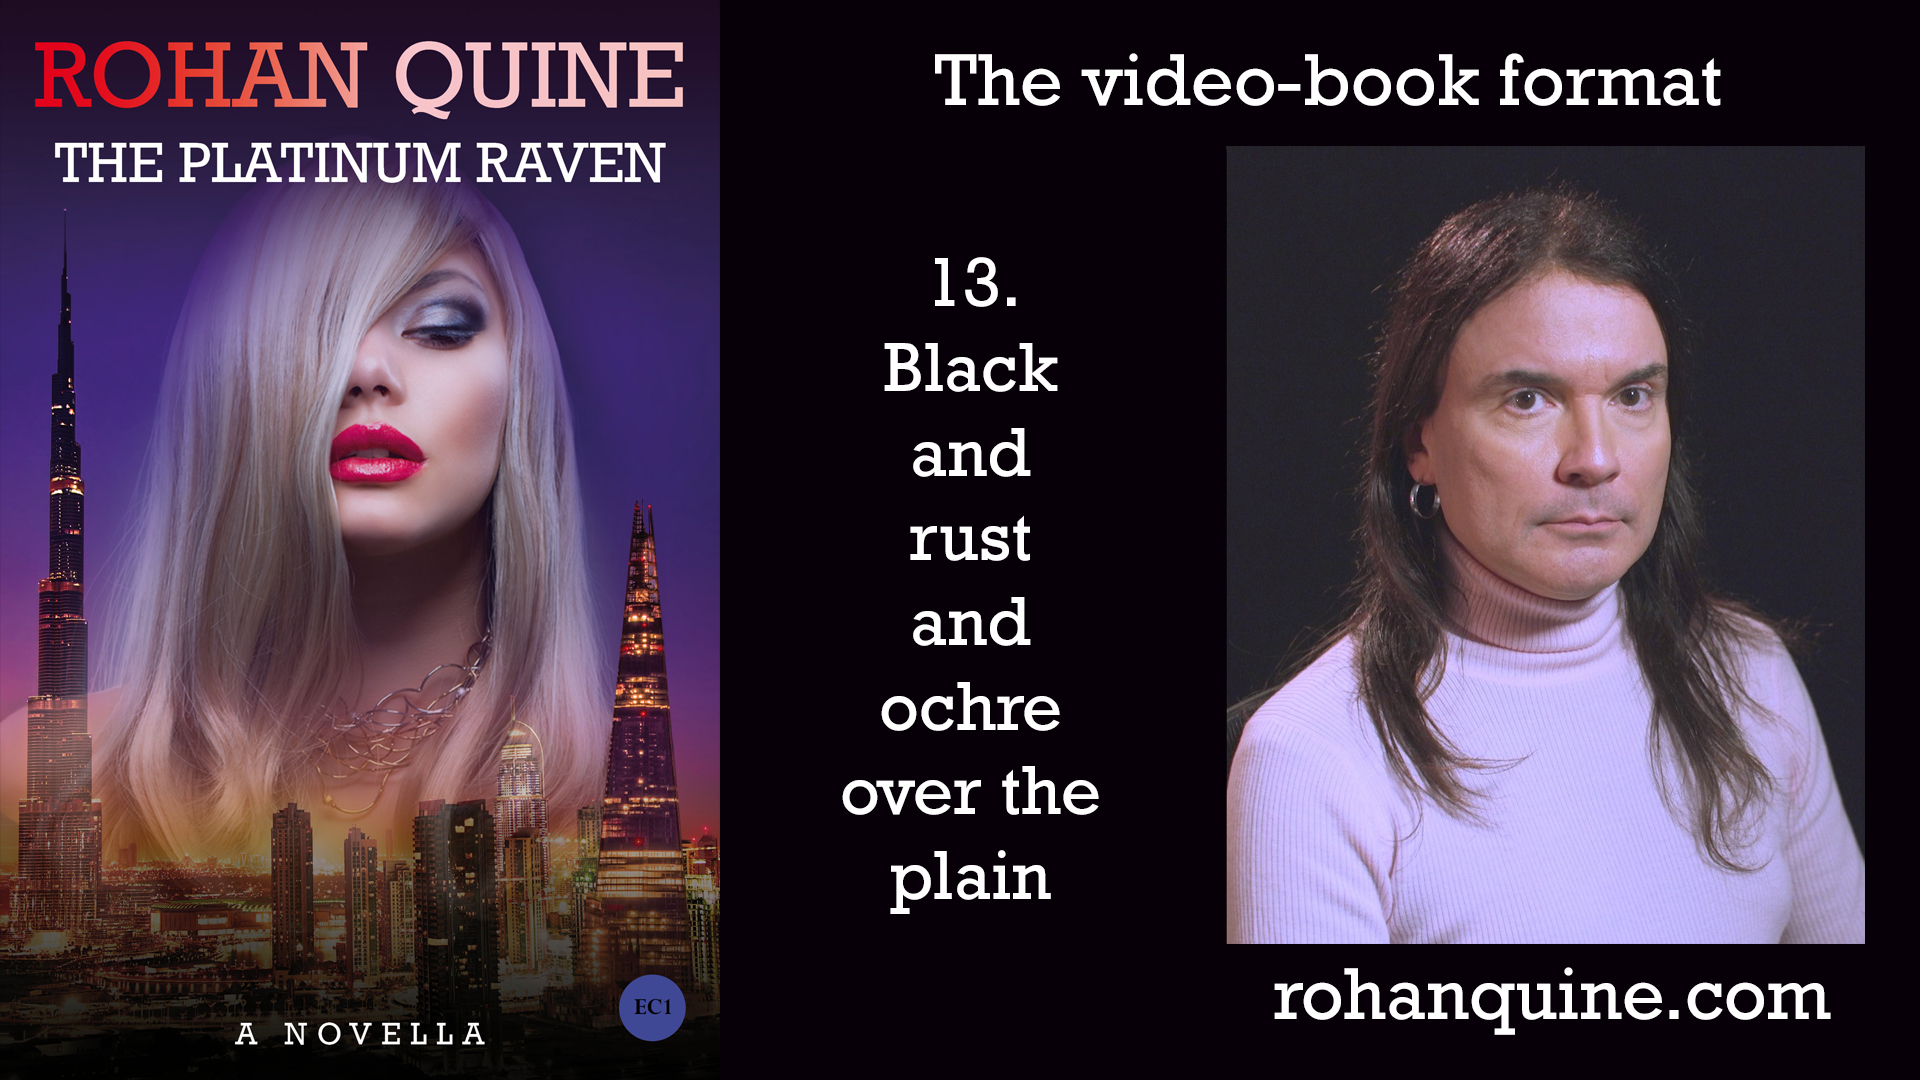 THE PLATINUM RAVEN by Rohan Quine - video-book format - chapter 13